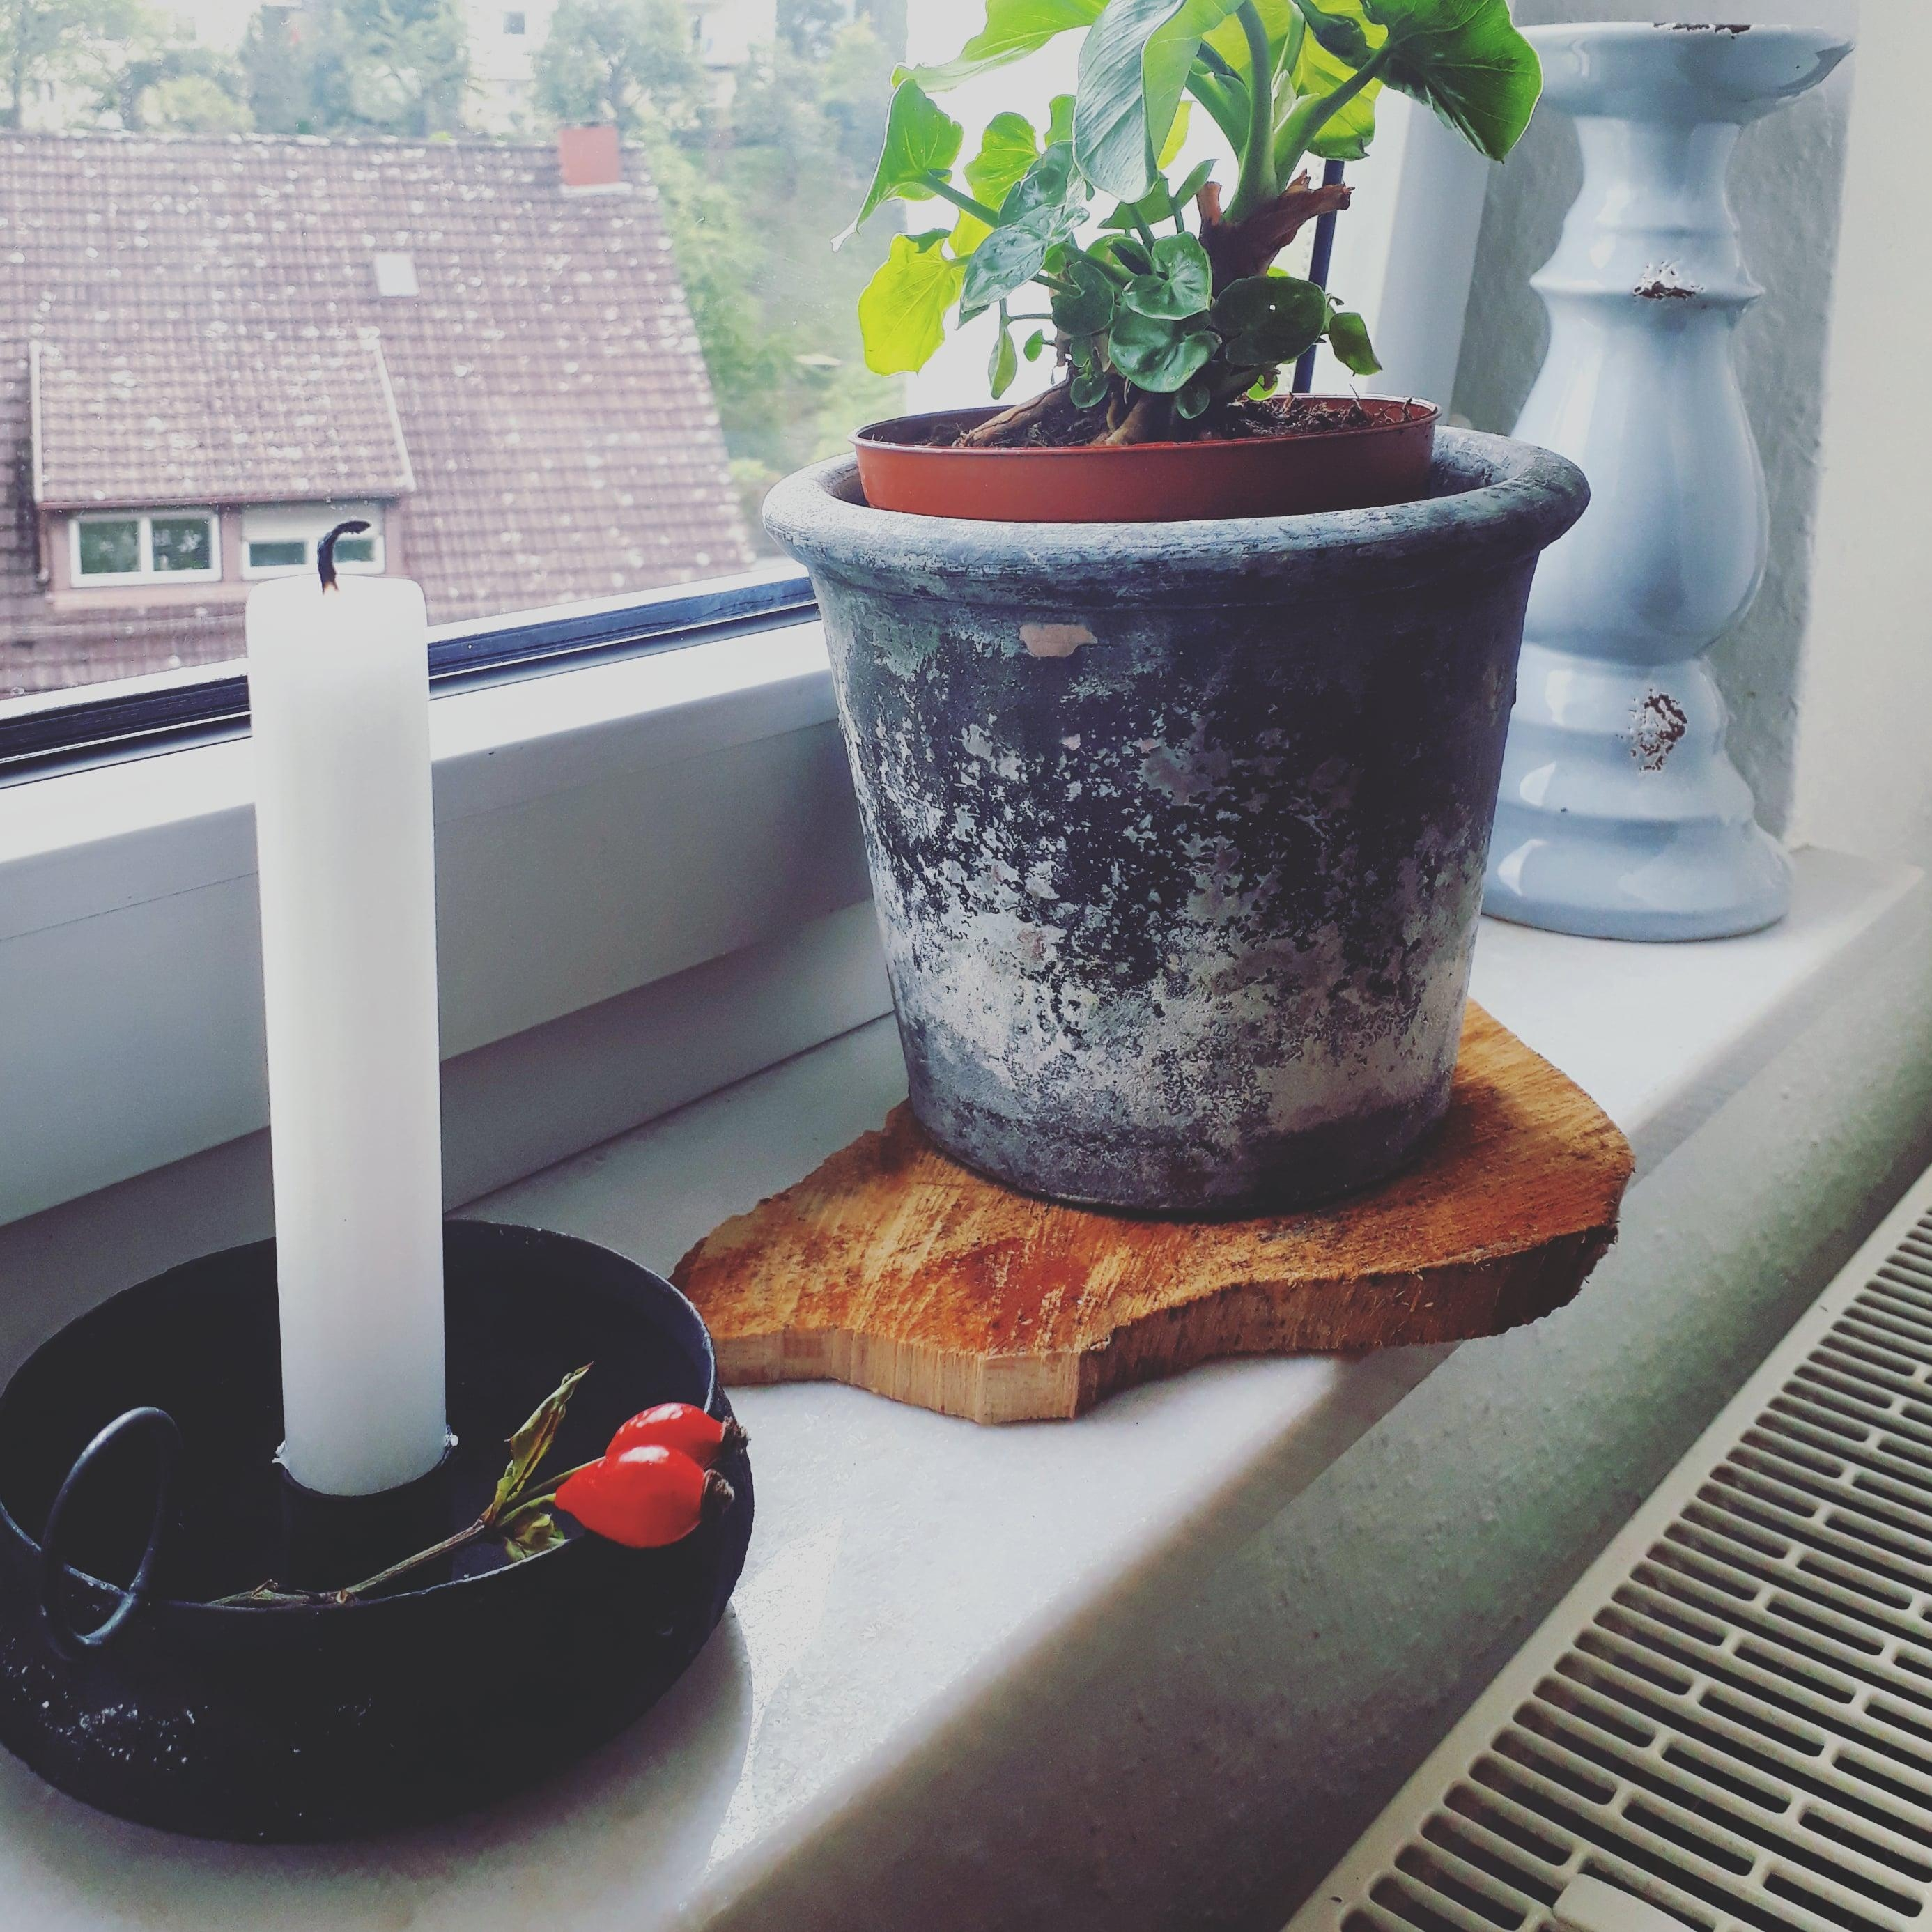 Window sill harmony ♡ 